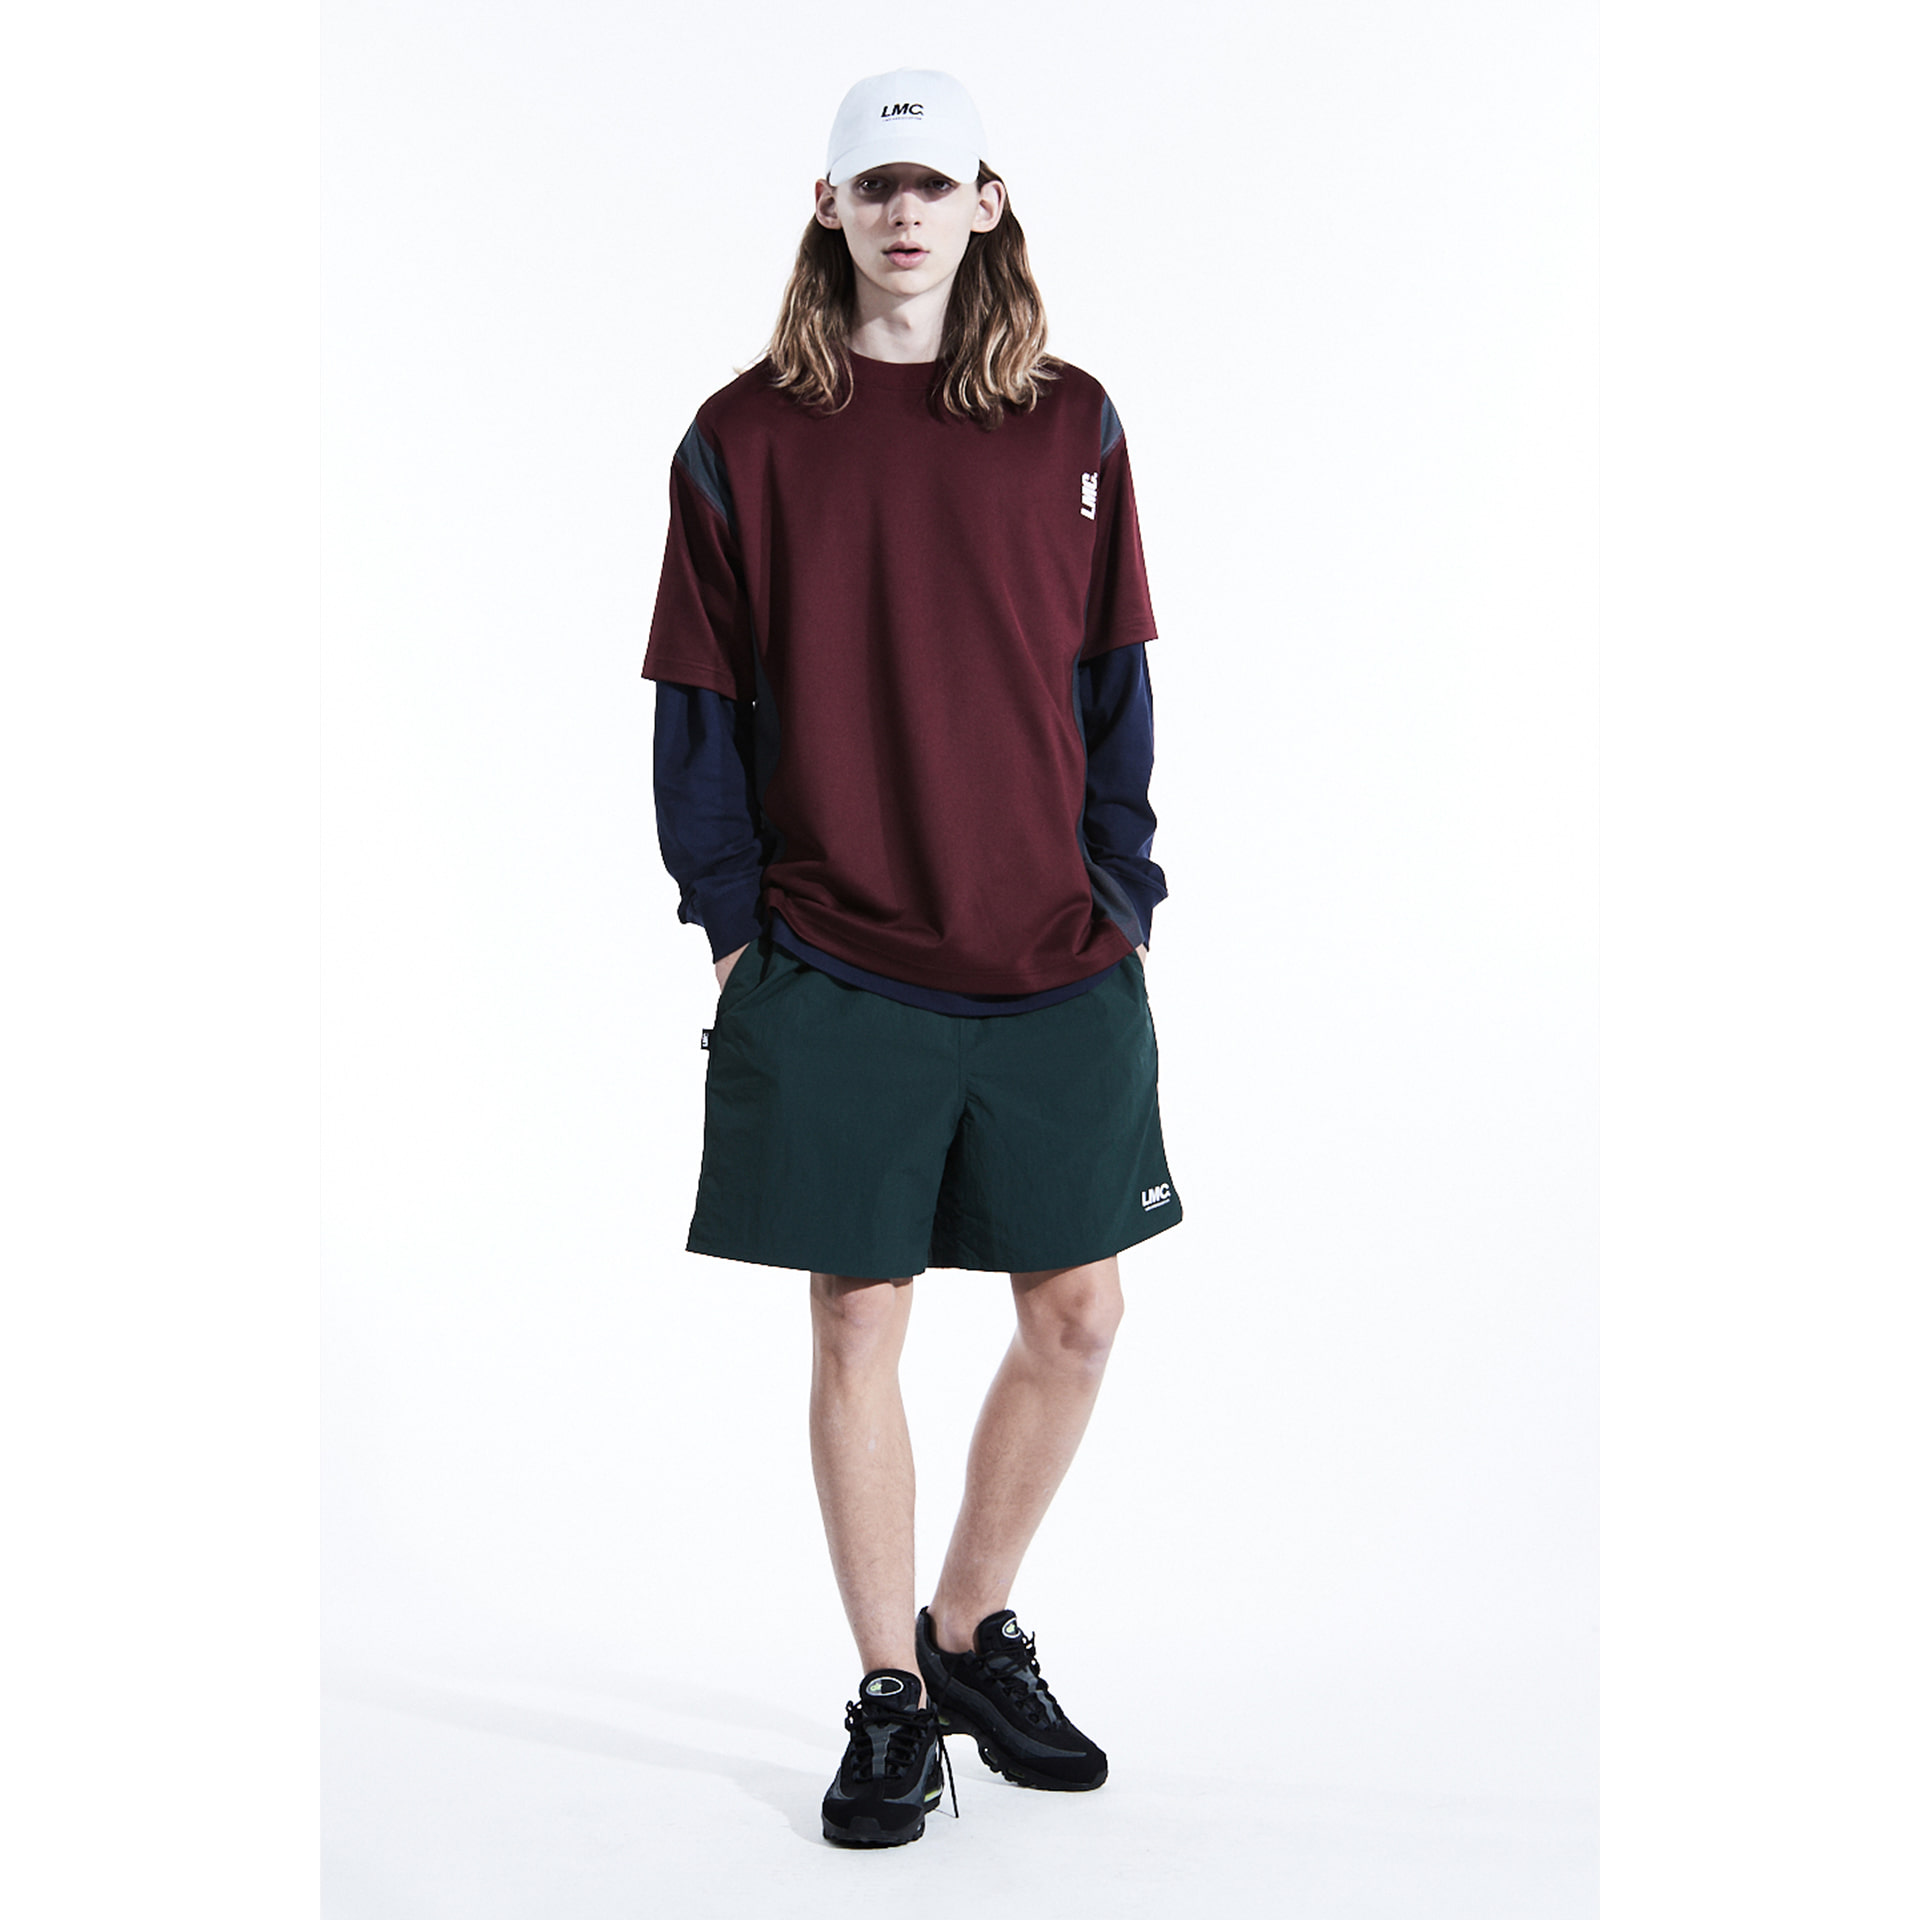 layer-LMC MESH LAYERED JERSEY TEE burgundy♡韓國男裝上衣